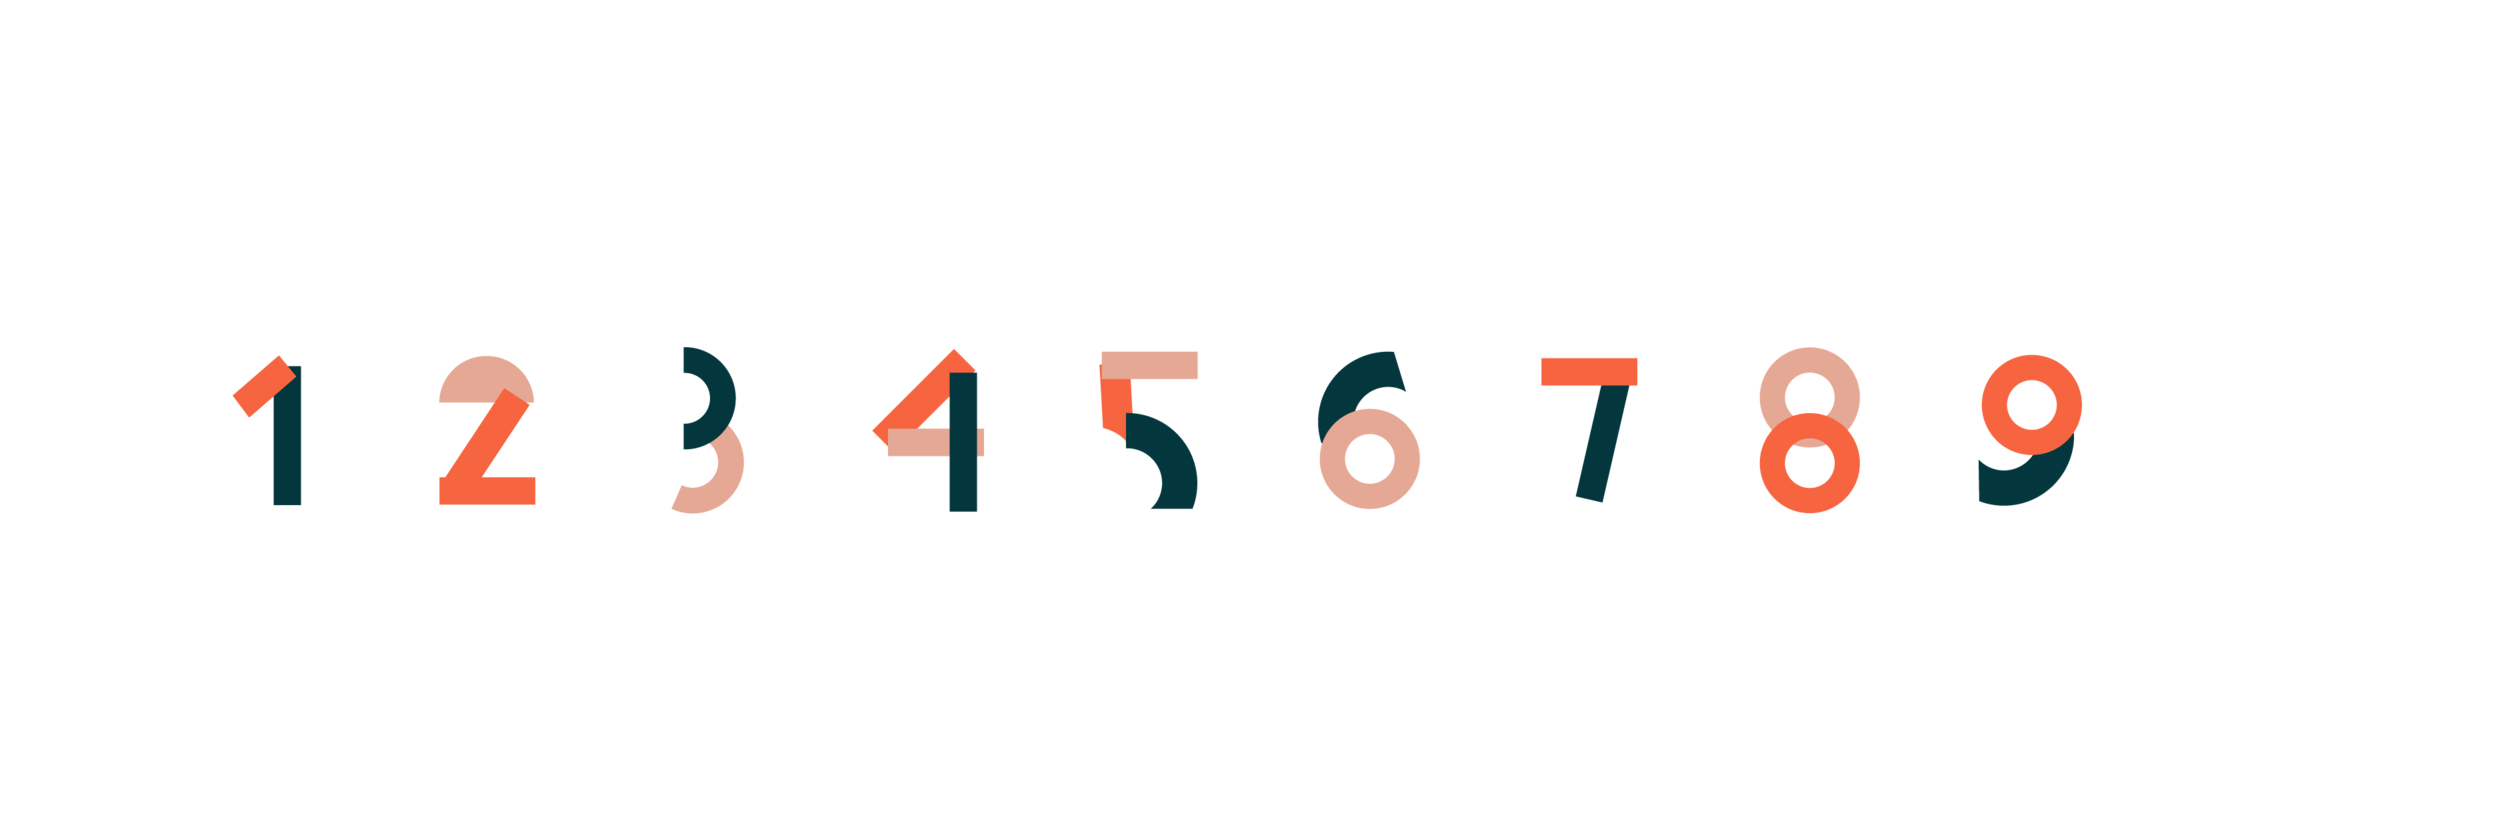 numbers-01.png